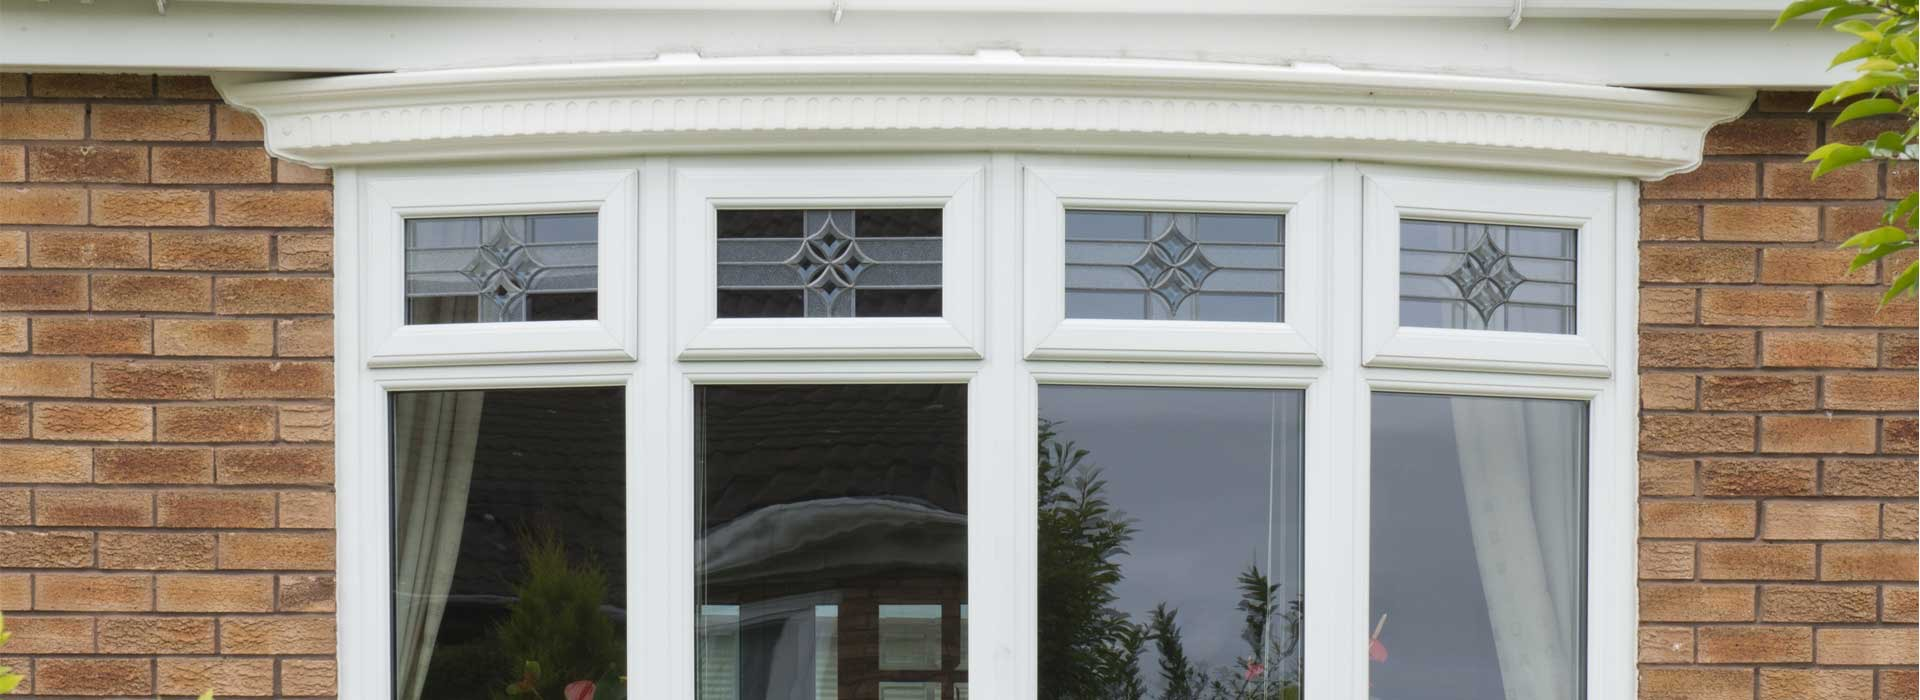 uPVC Bow & Bay window Affix Windows